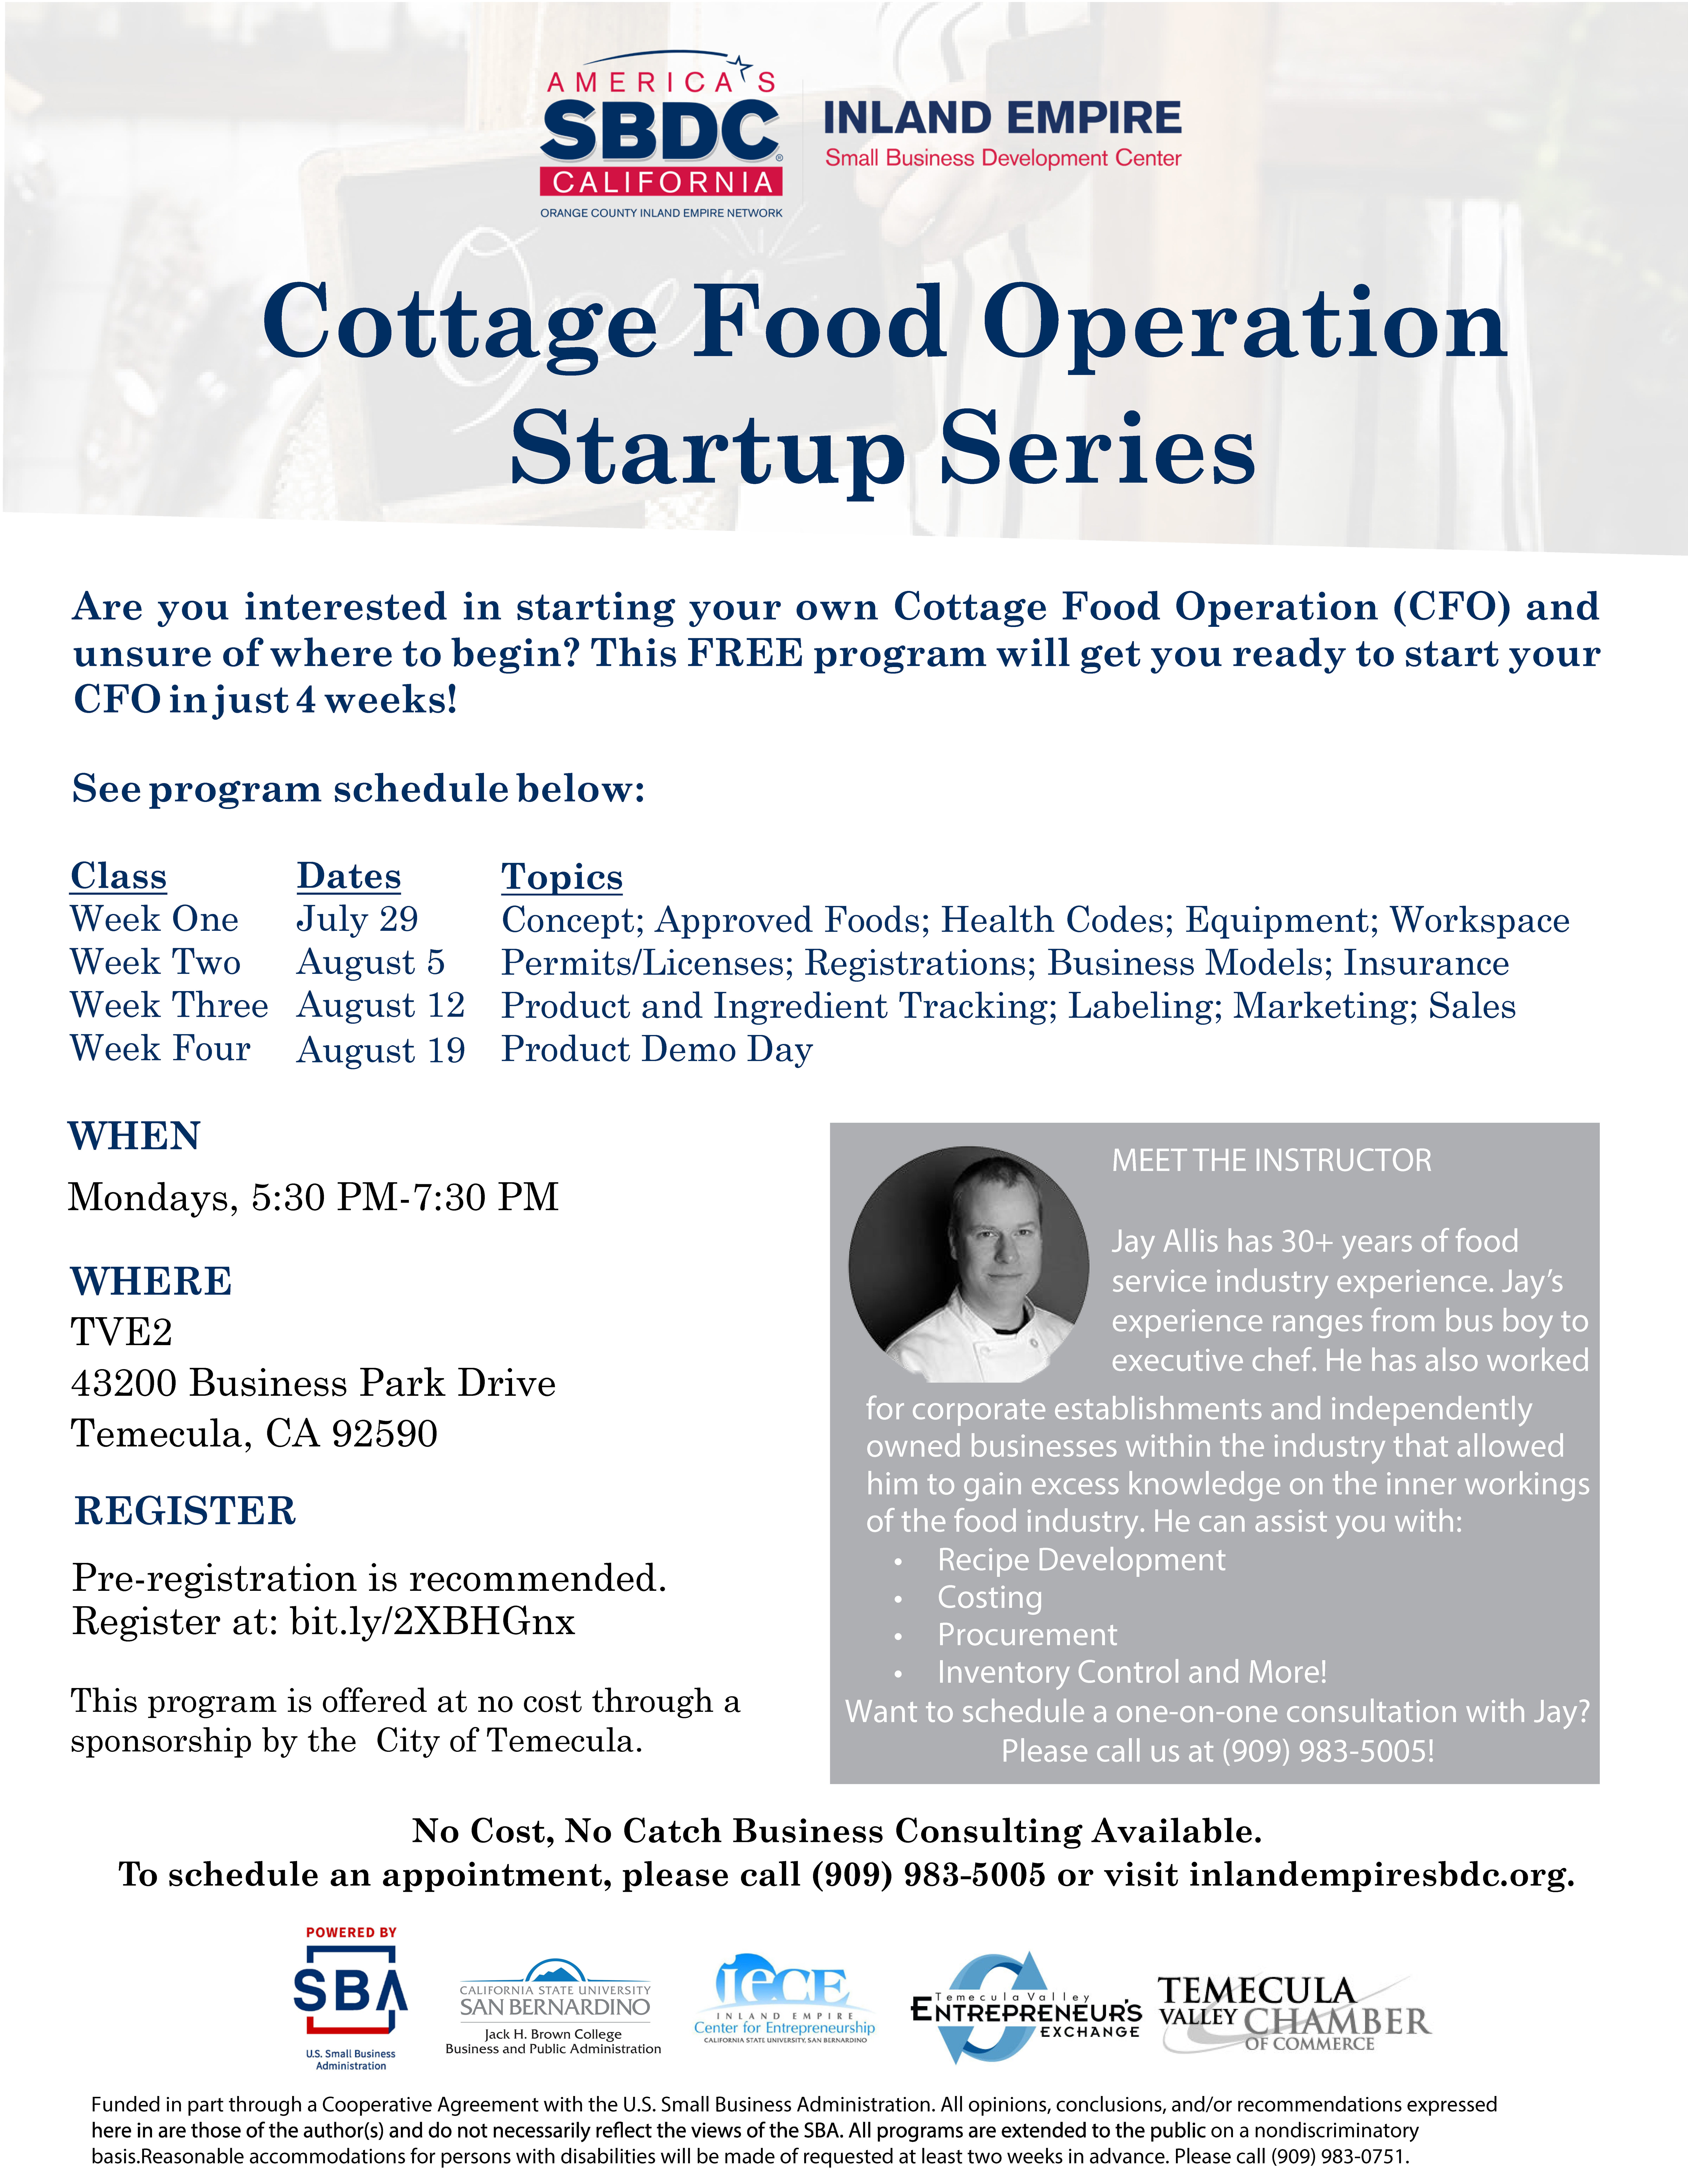 SBDC - Cottage Food Operations Startup Series @ TVE2